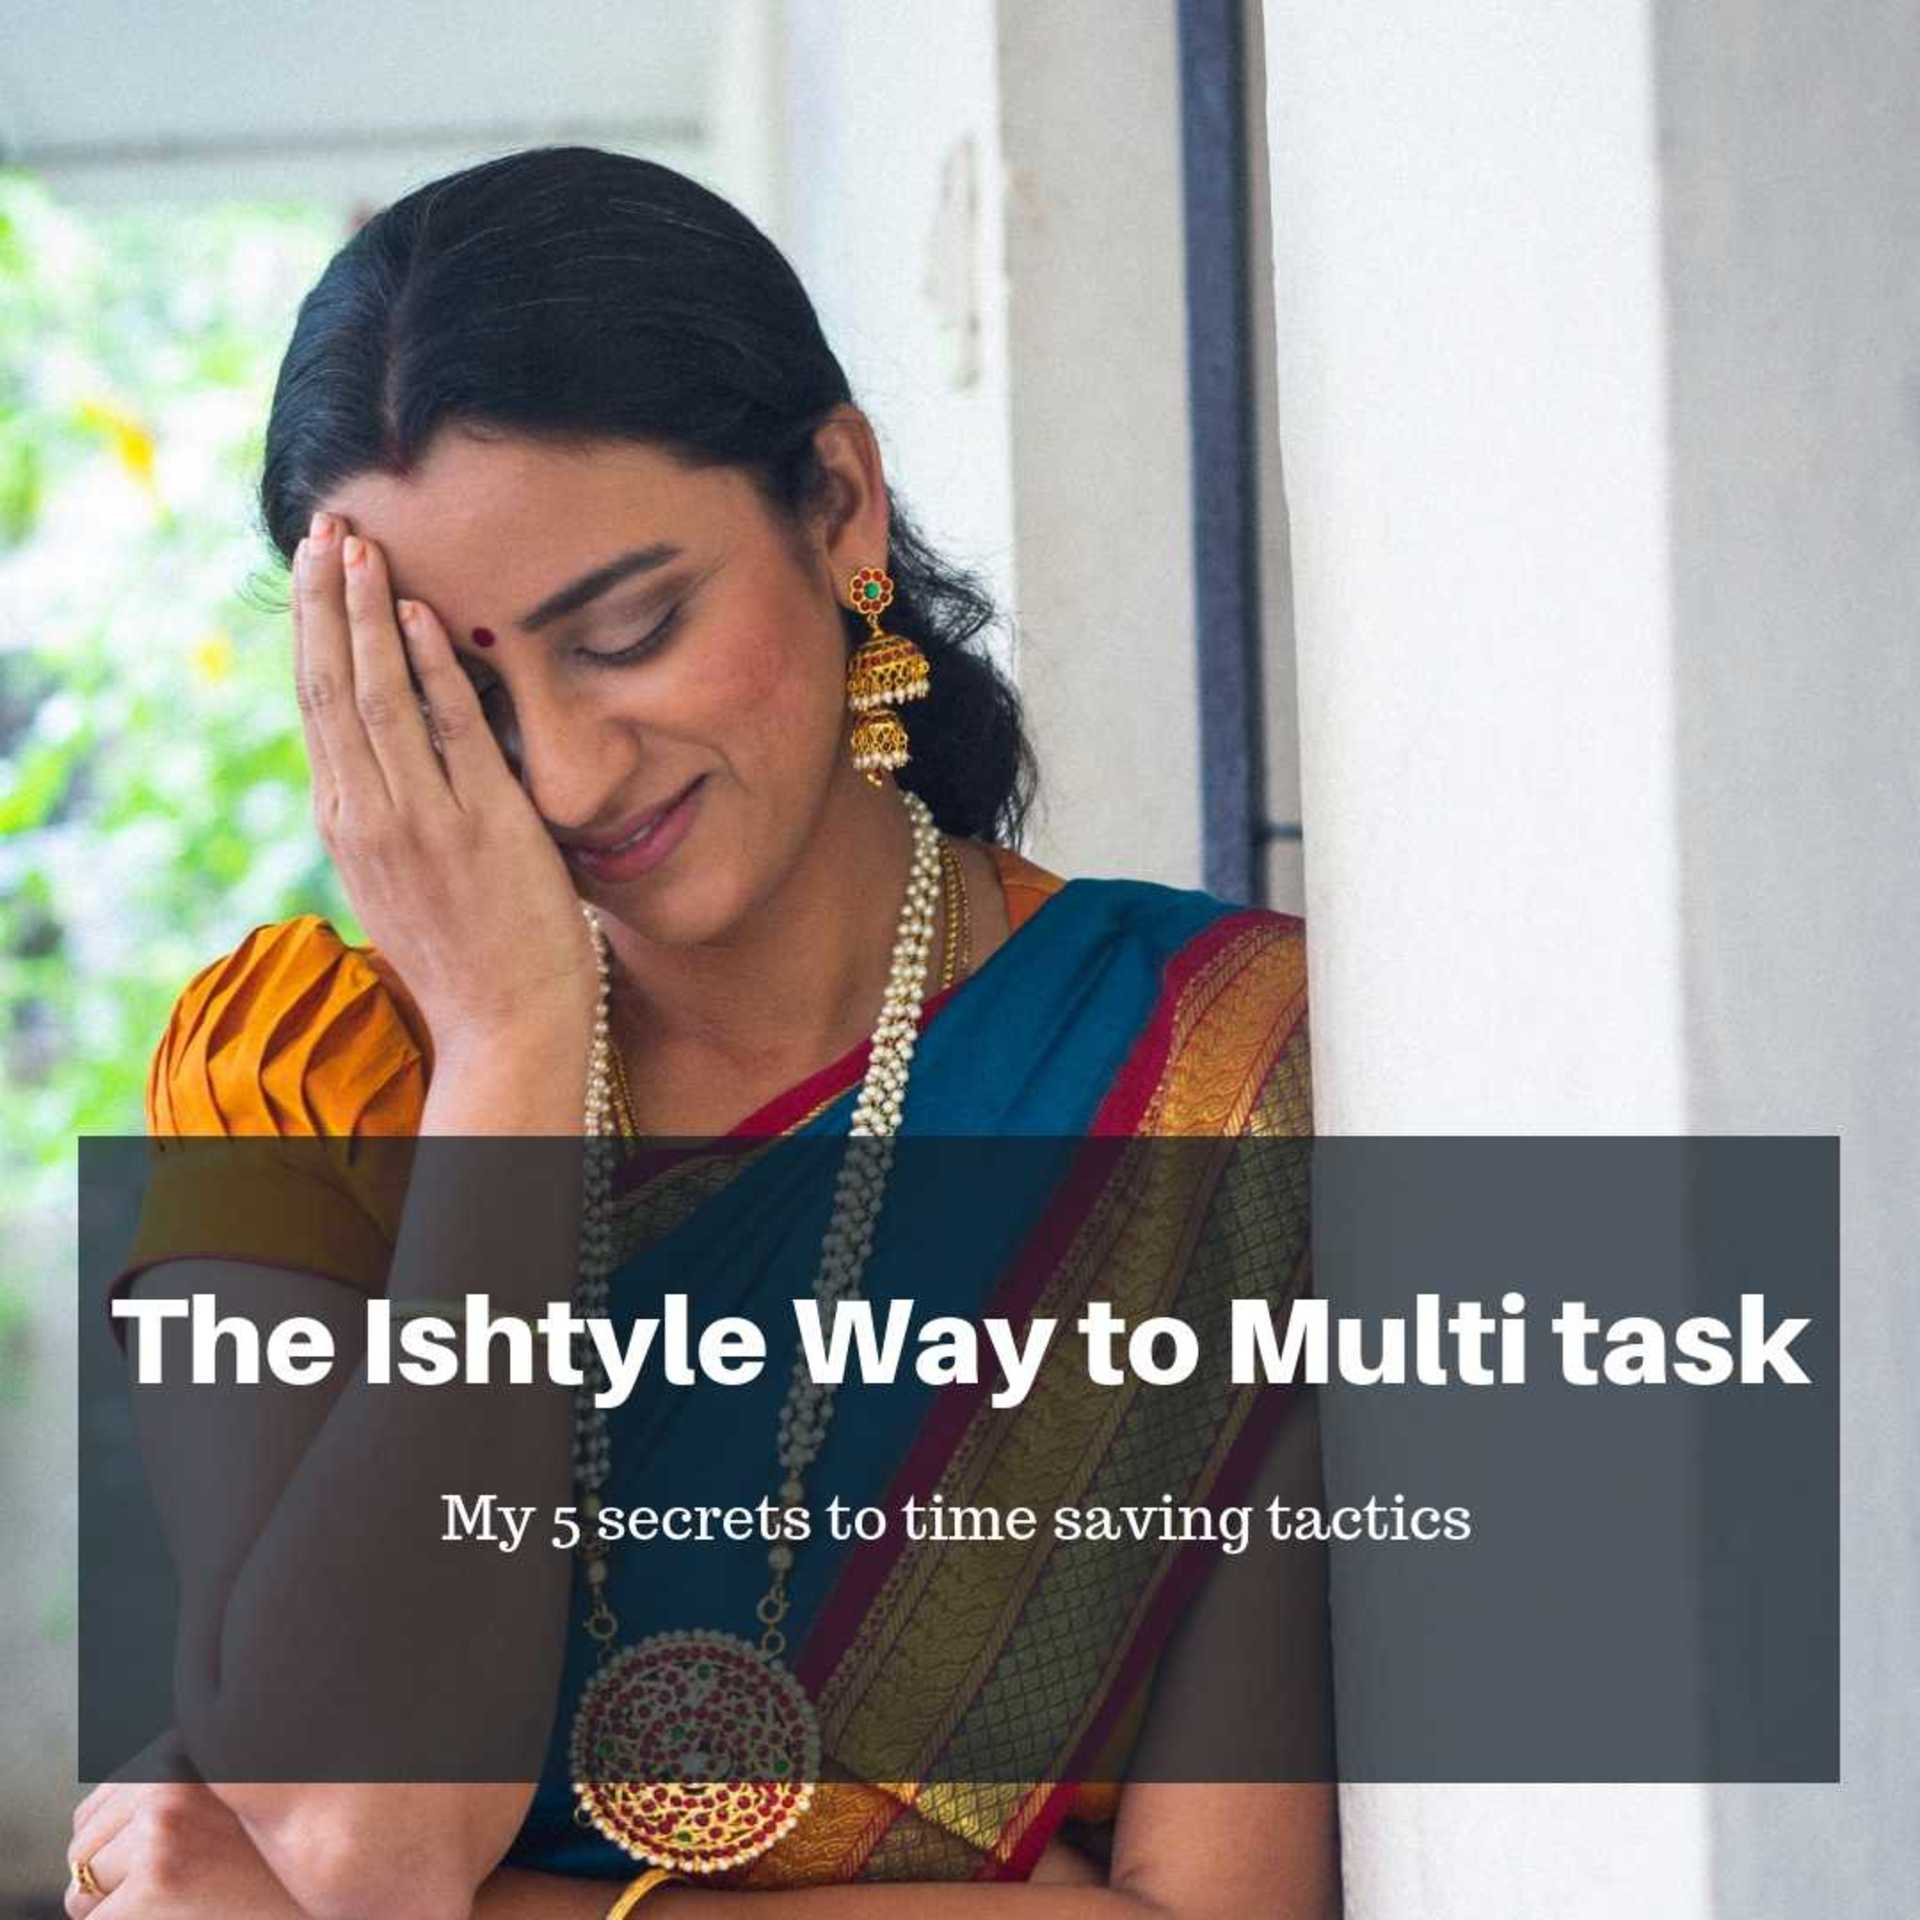 My top 5 secrets to Multitasking your way through life image